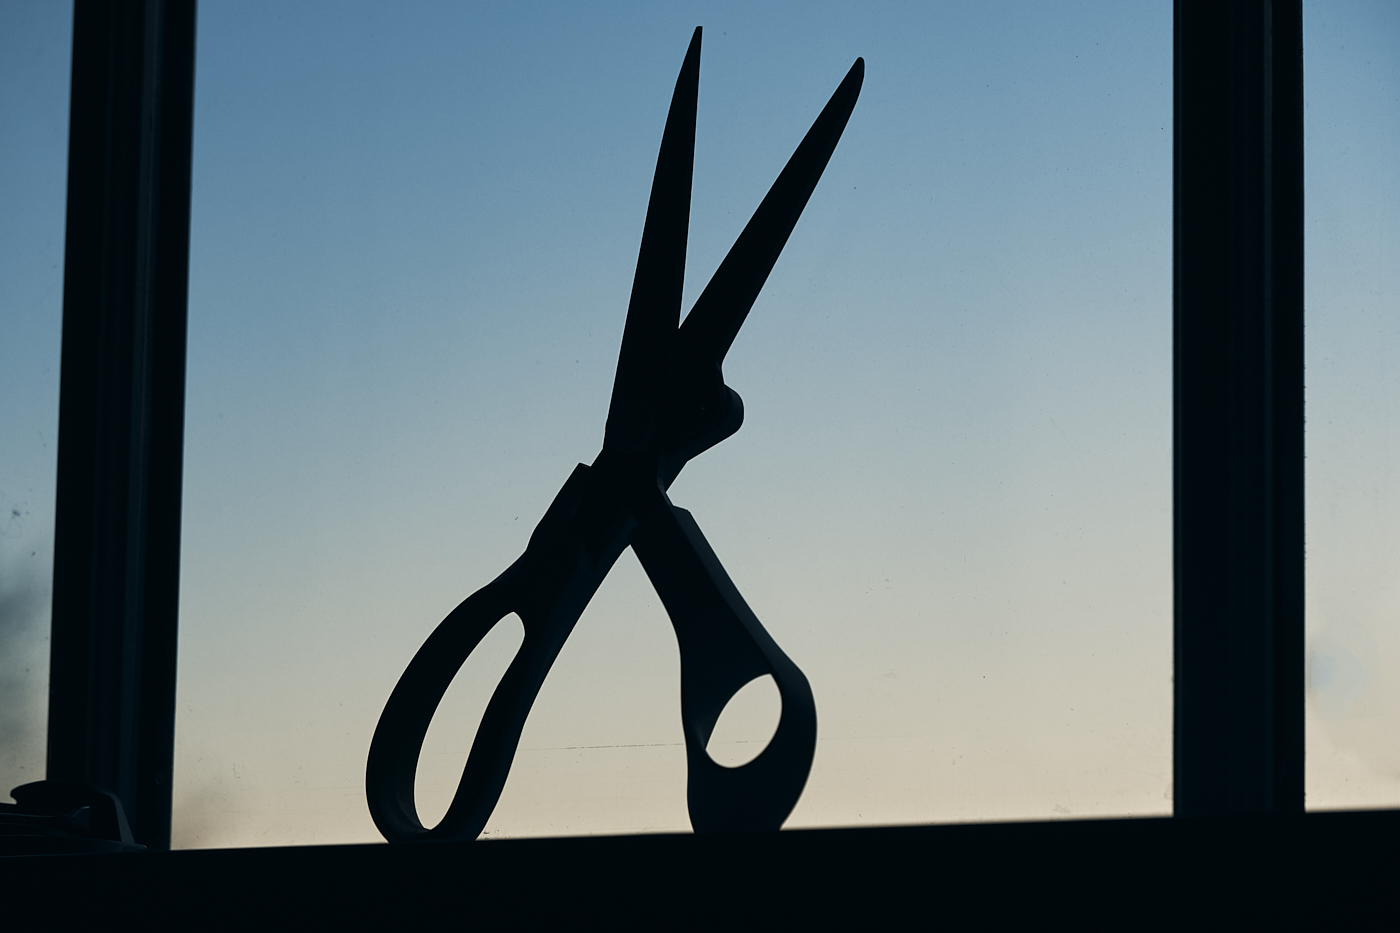 silhouette kitchen scissors sharp